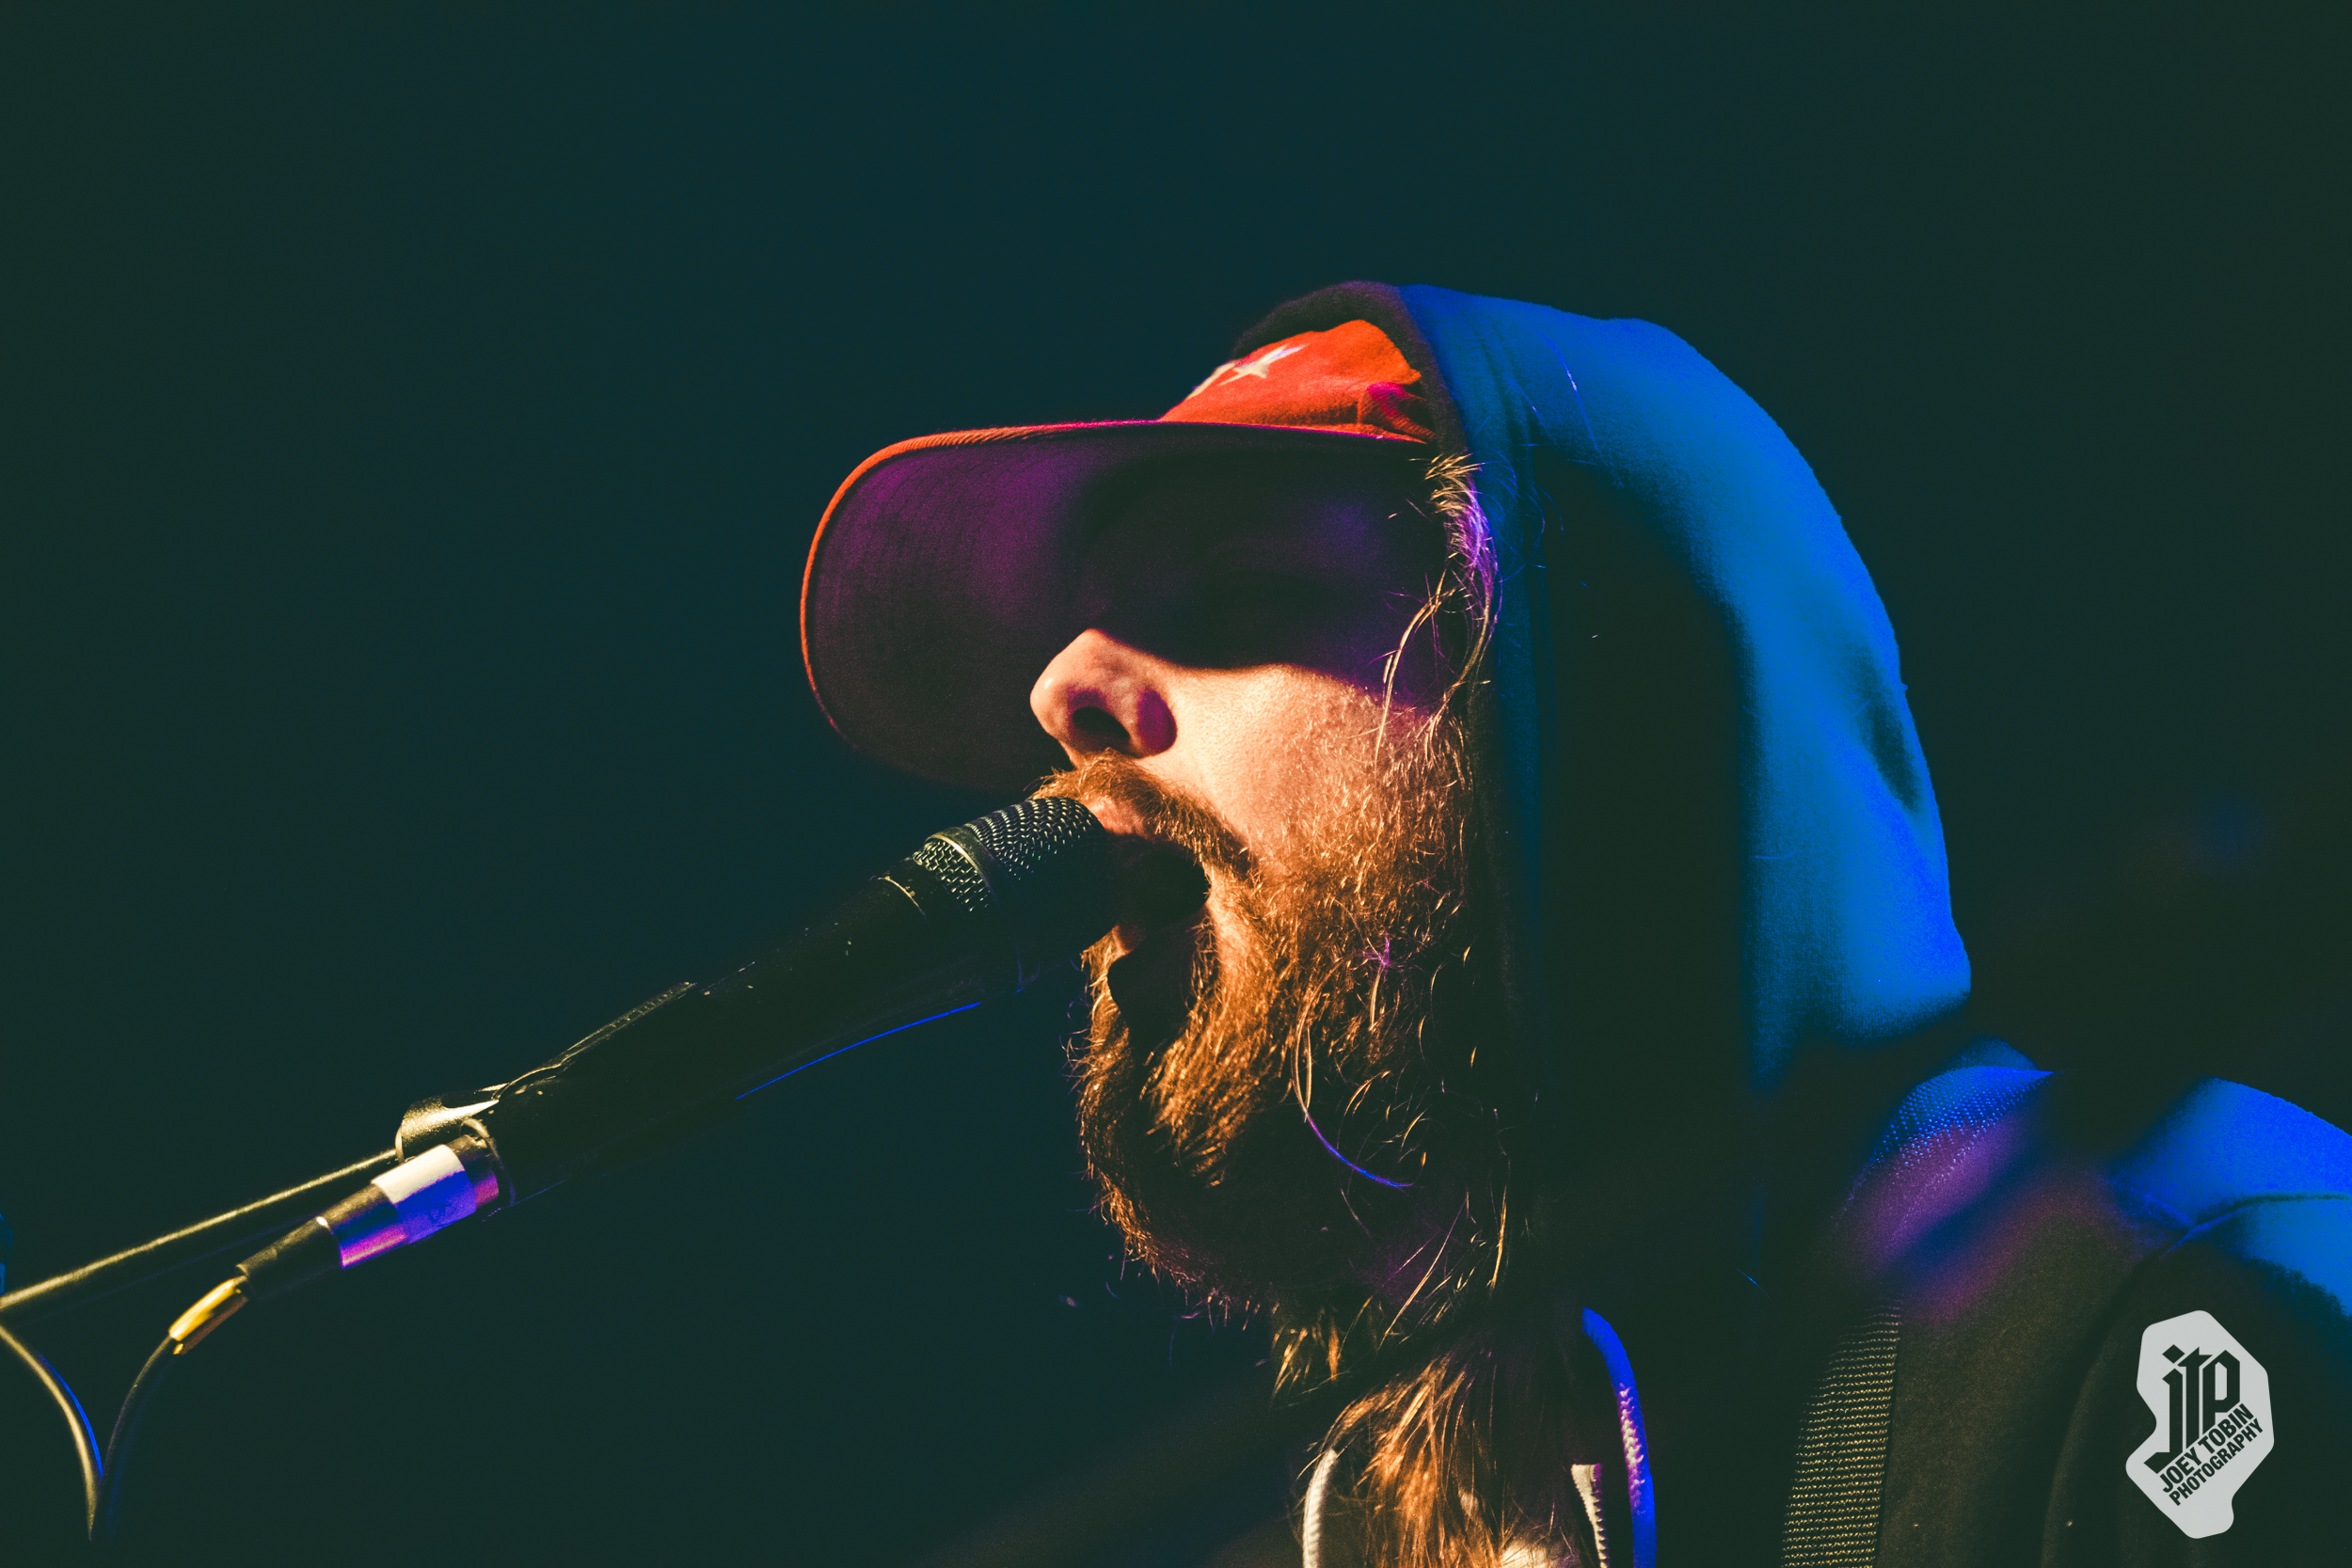 Sorority_Noise_HOB_San_Diego_Watermarked_0010.jpg